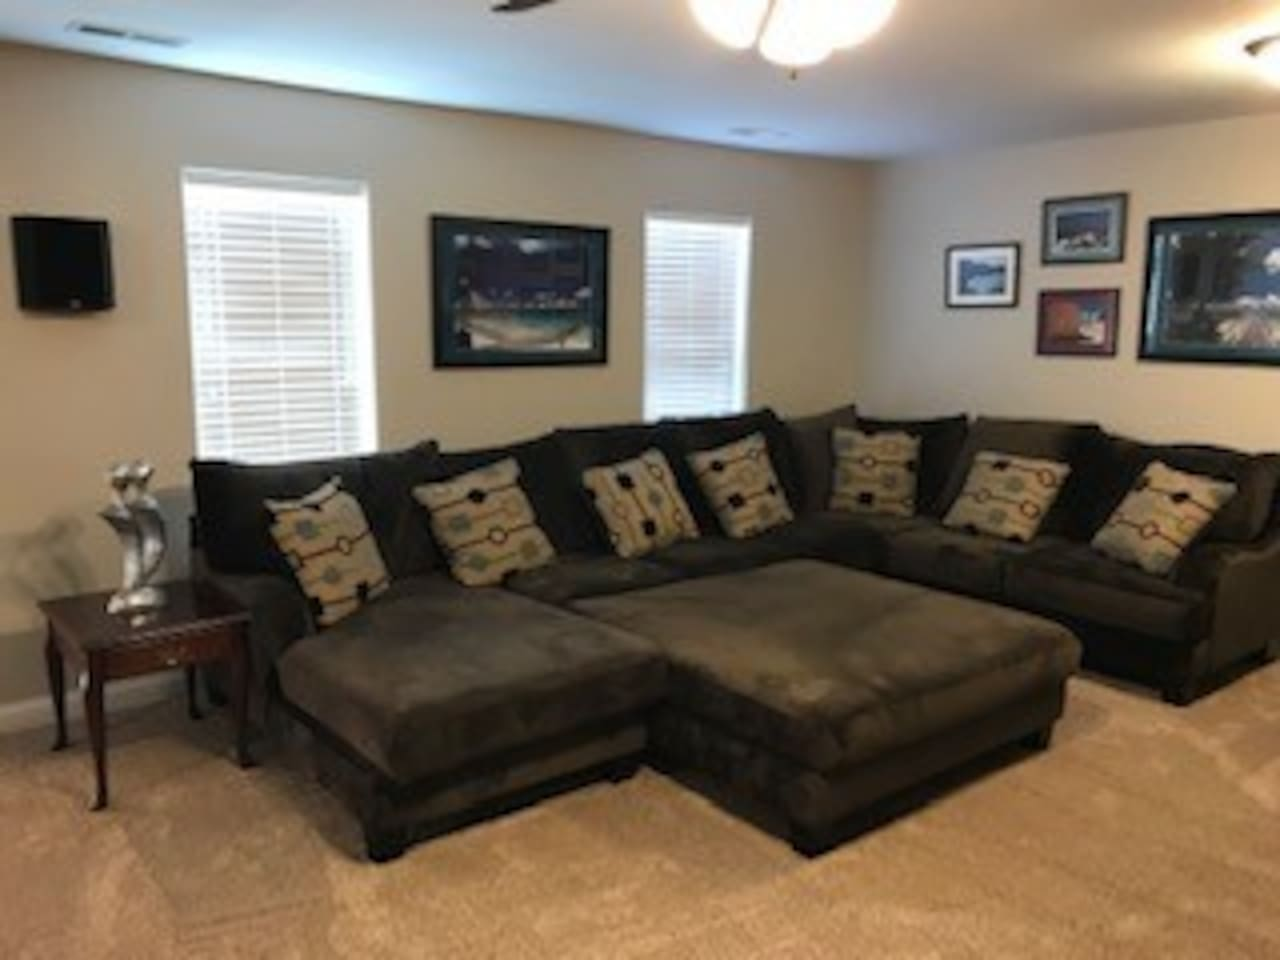 Large Sectional for plenty of seating in living area